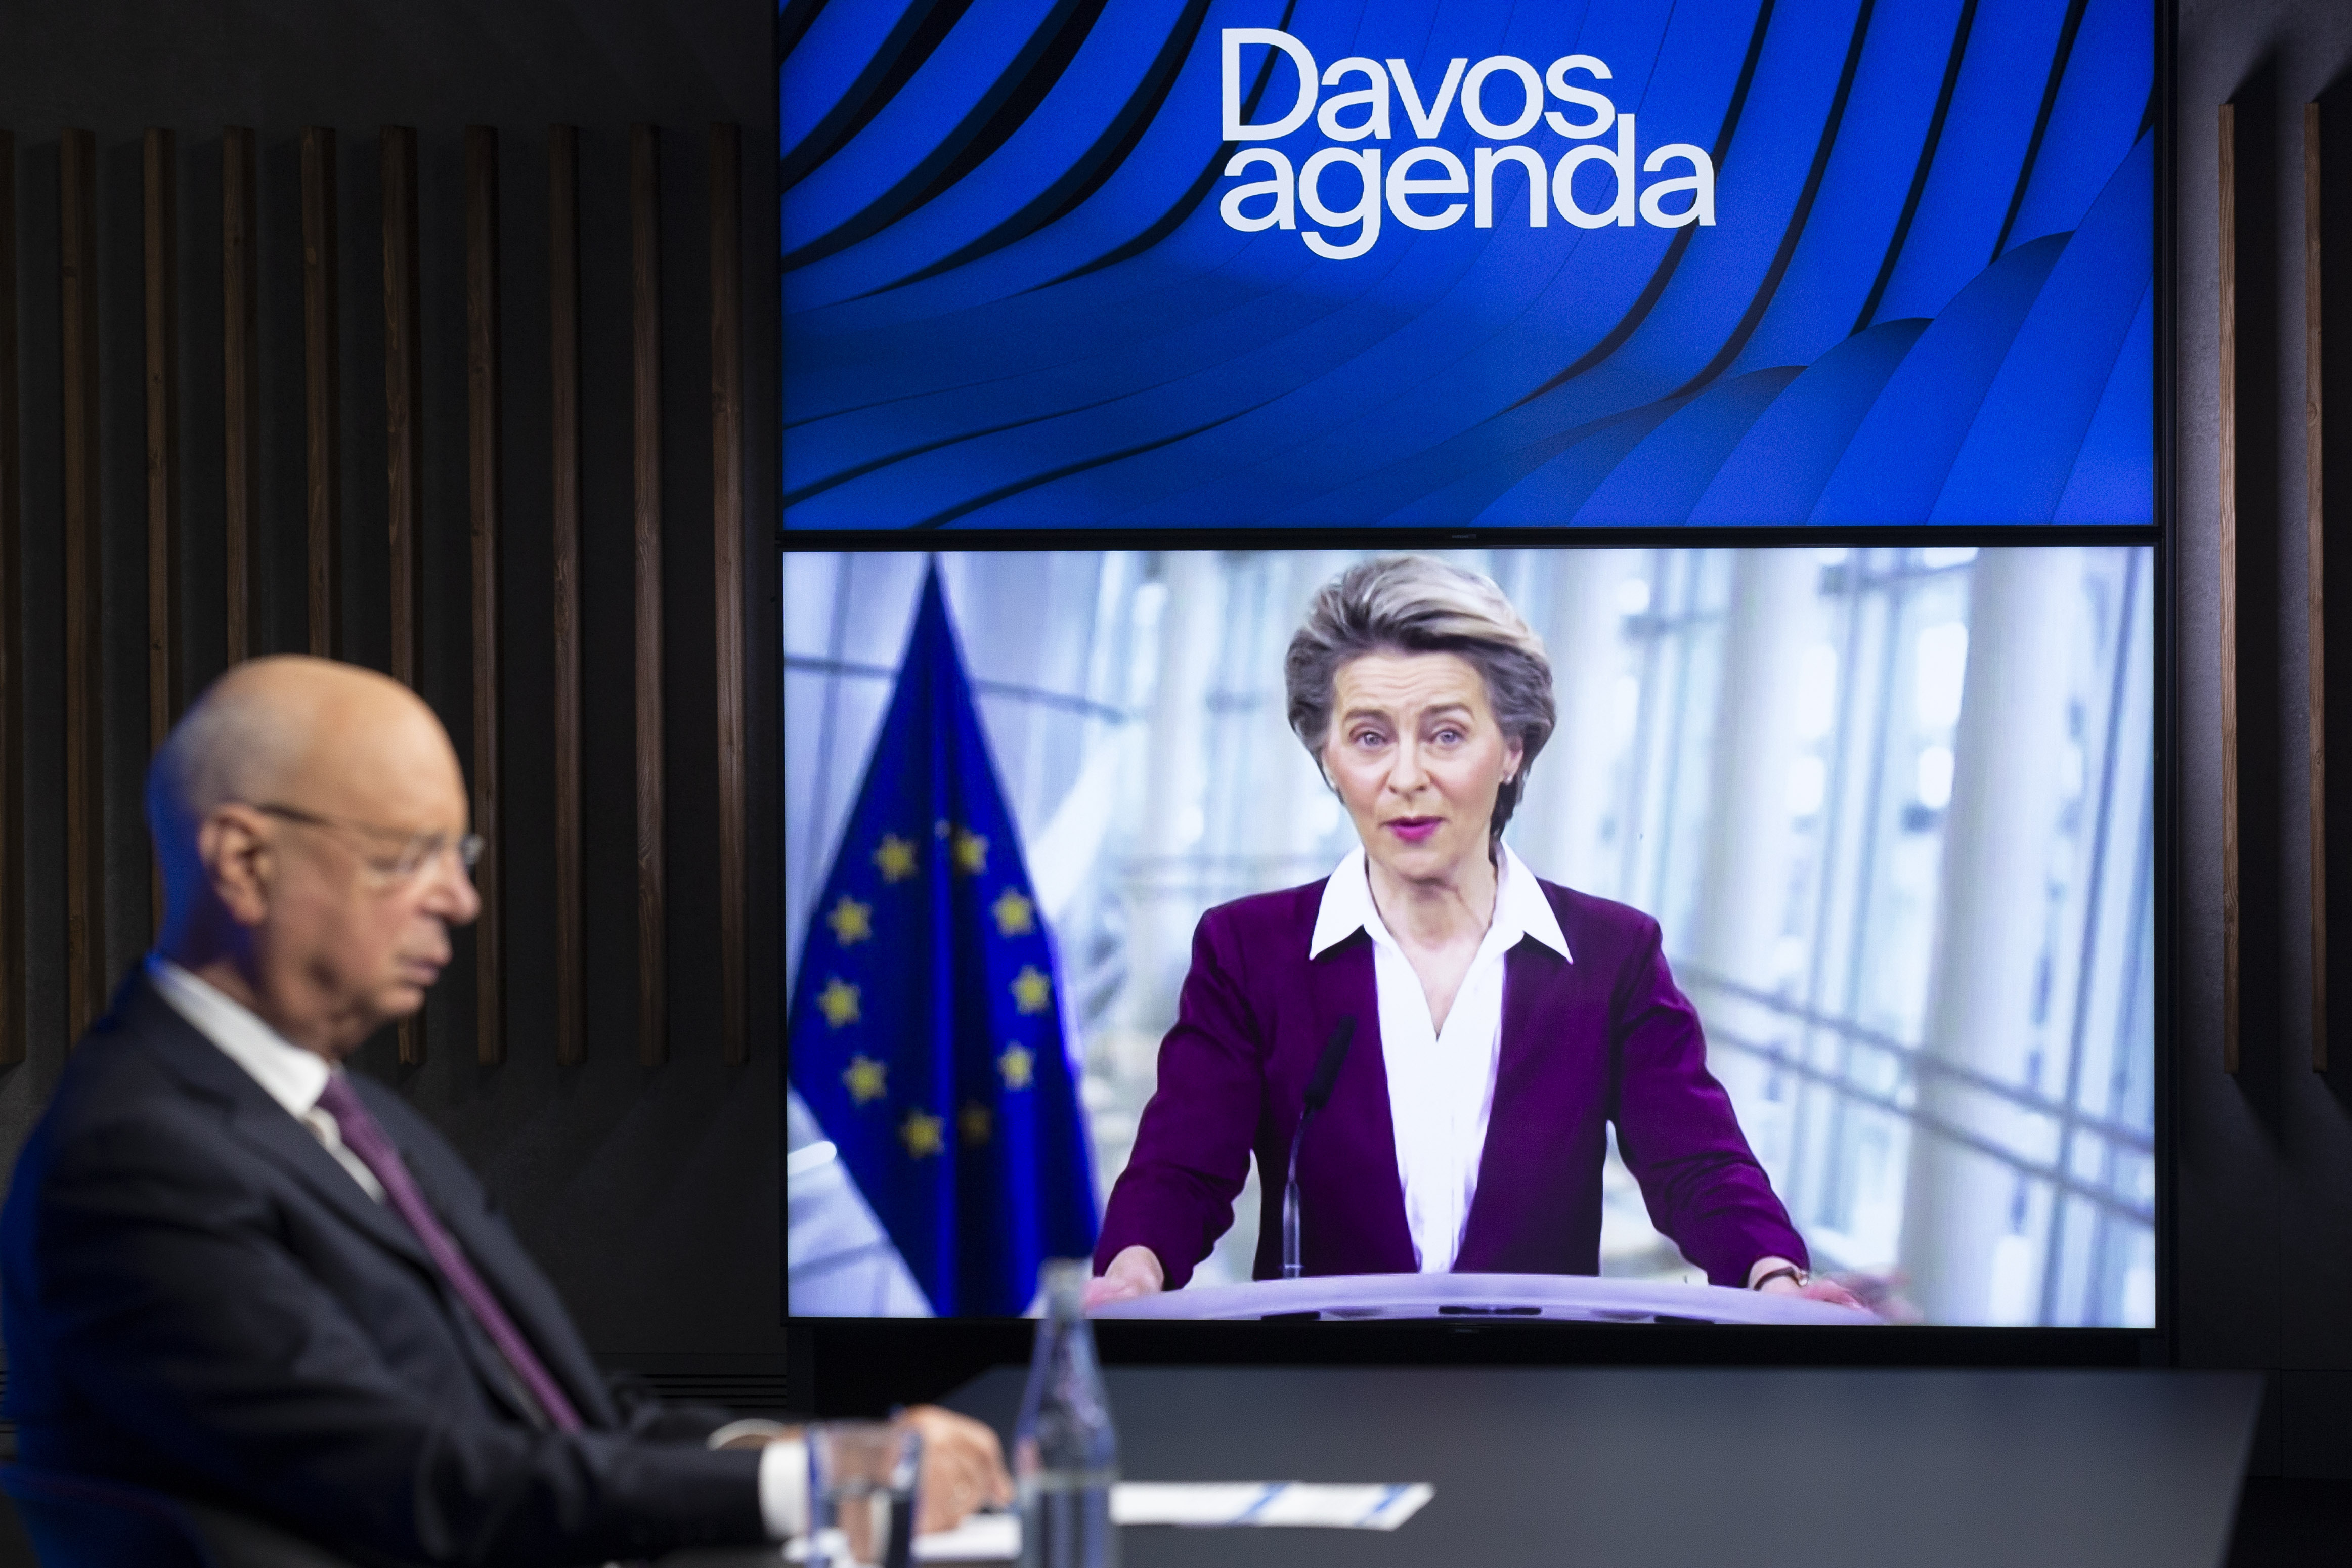 German Klaus Schwab, left, Founder and Executive Chairman of the World Economic Forum, WEF, listens to European Commission President Ursula von der Leyen, displayed on a video screen, during a conference at the Davos Agenda in Cologny near Geneva, Switzerland, Tuesday, Jan. 26, 2021.